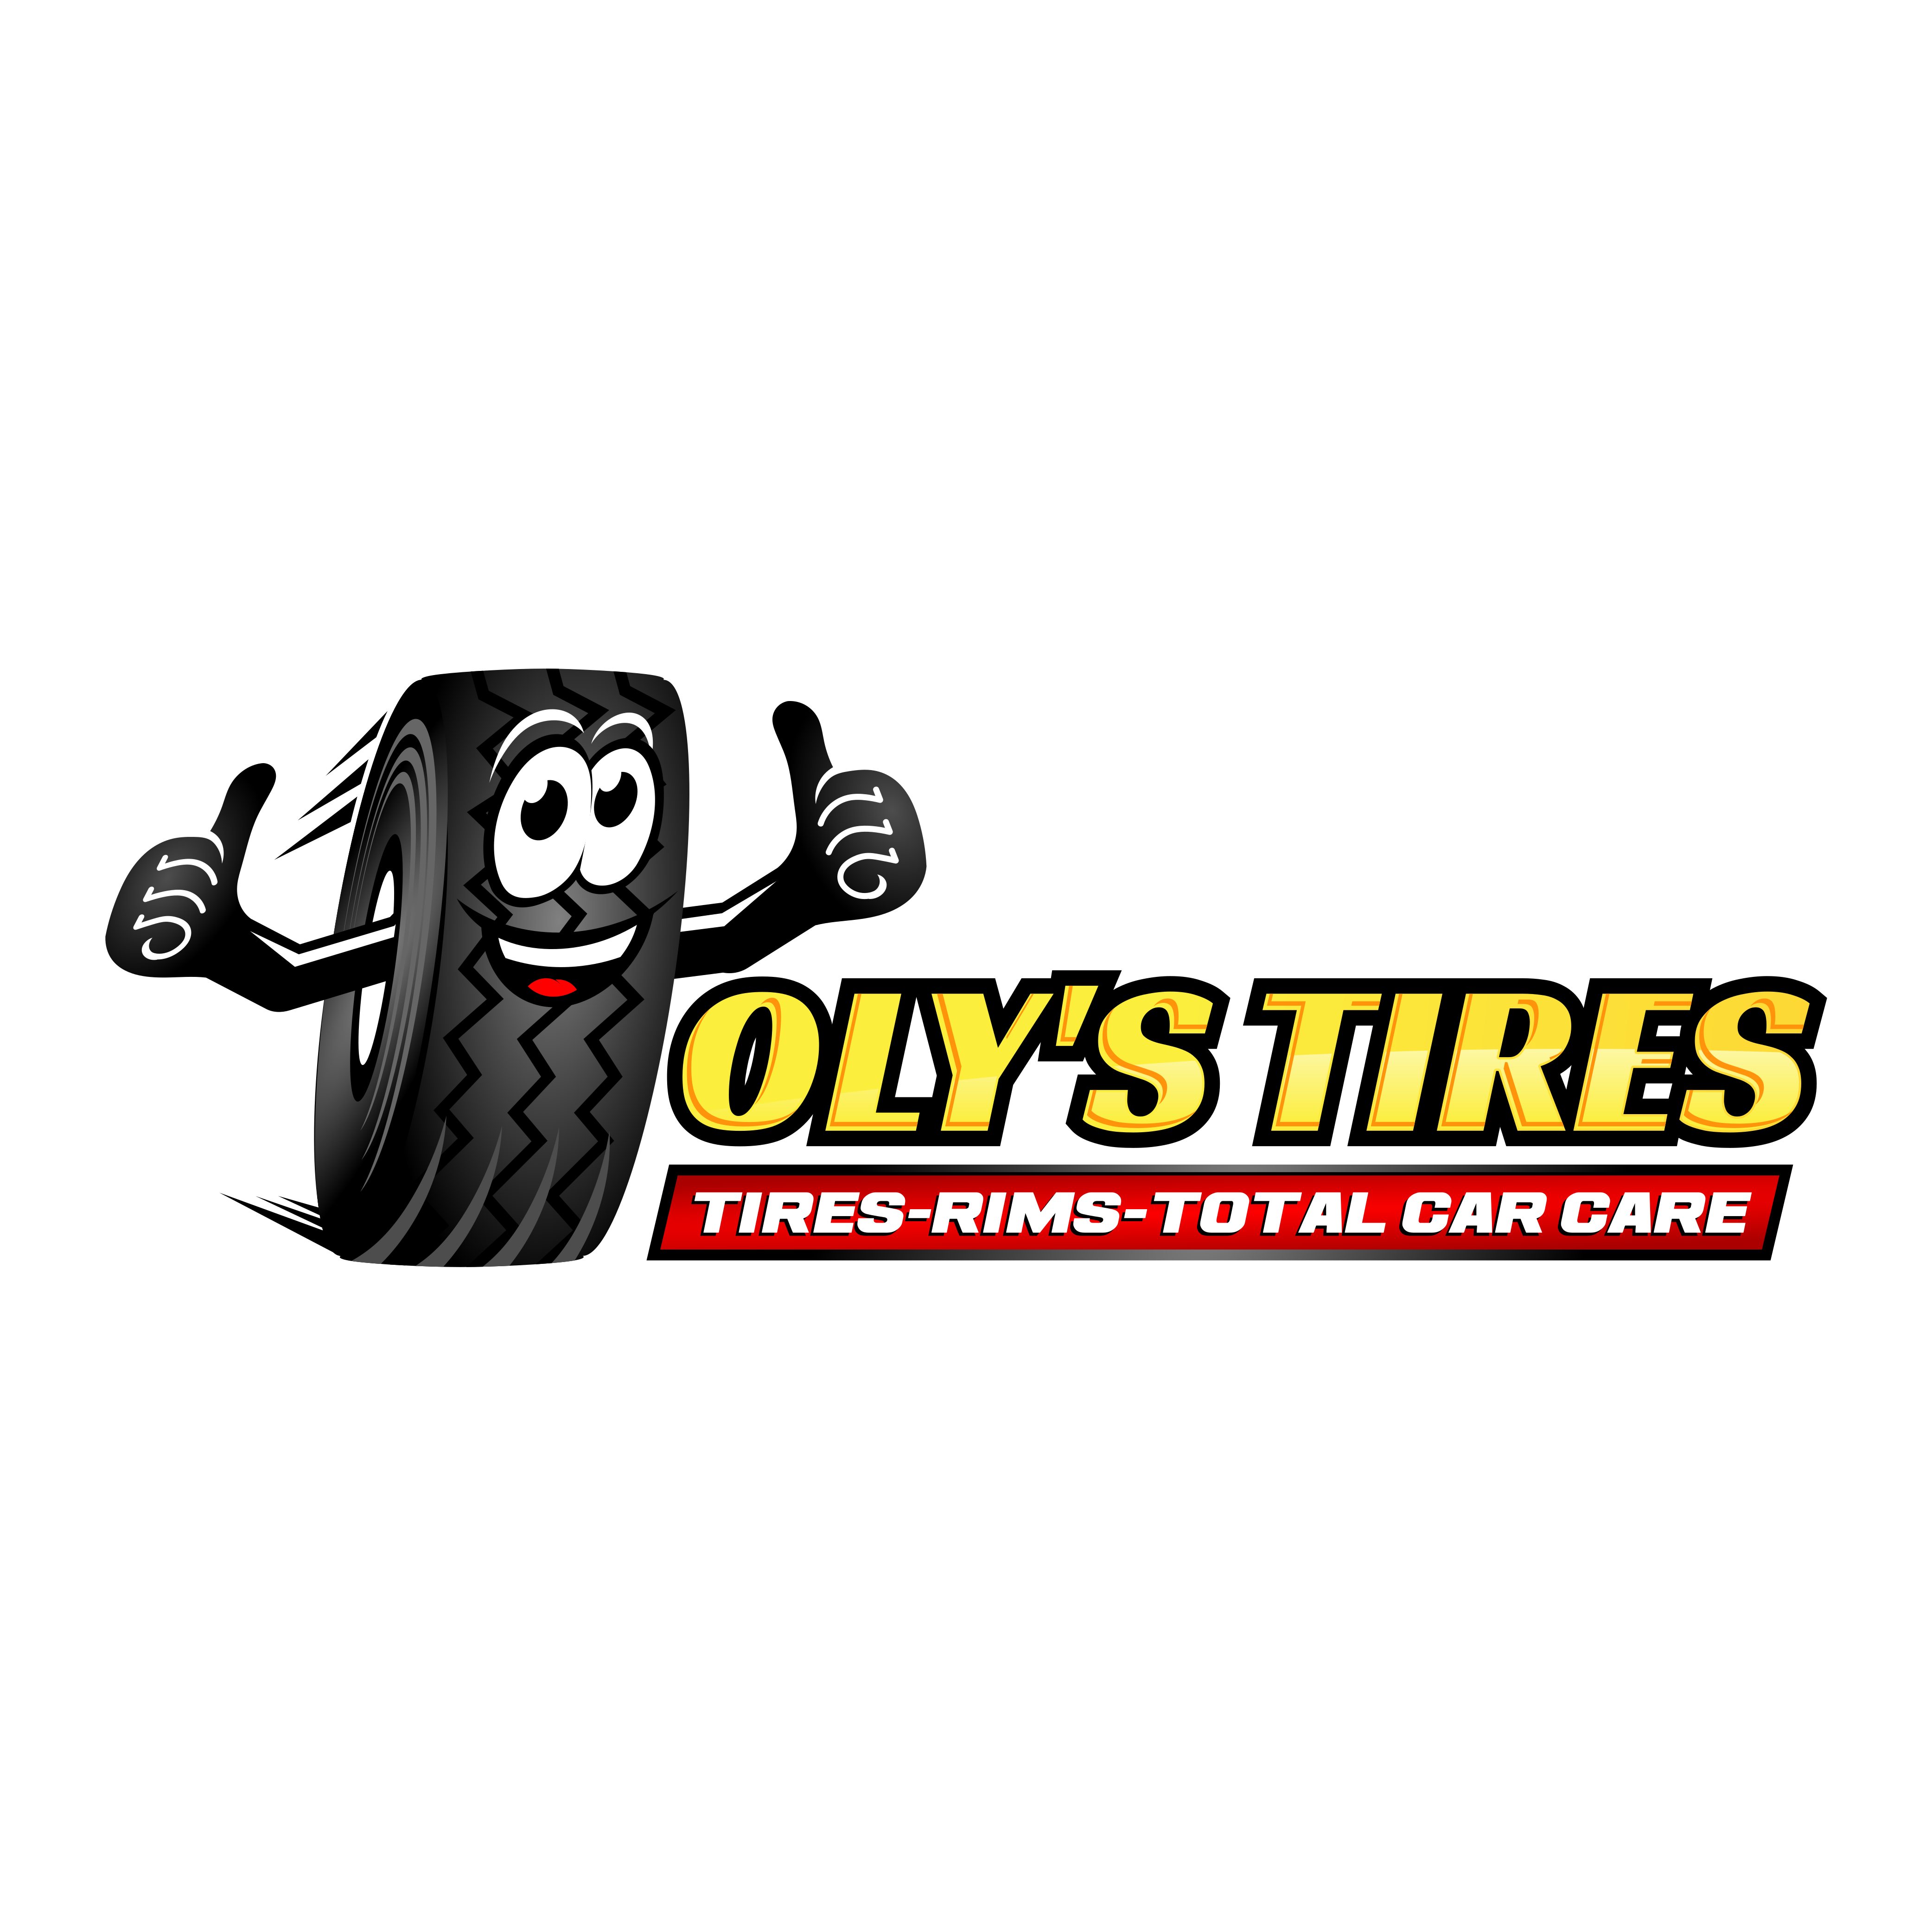 OLY'S TIRES